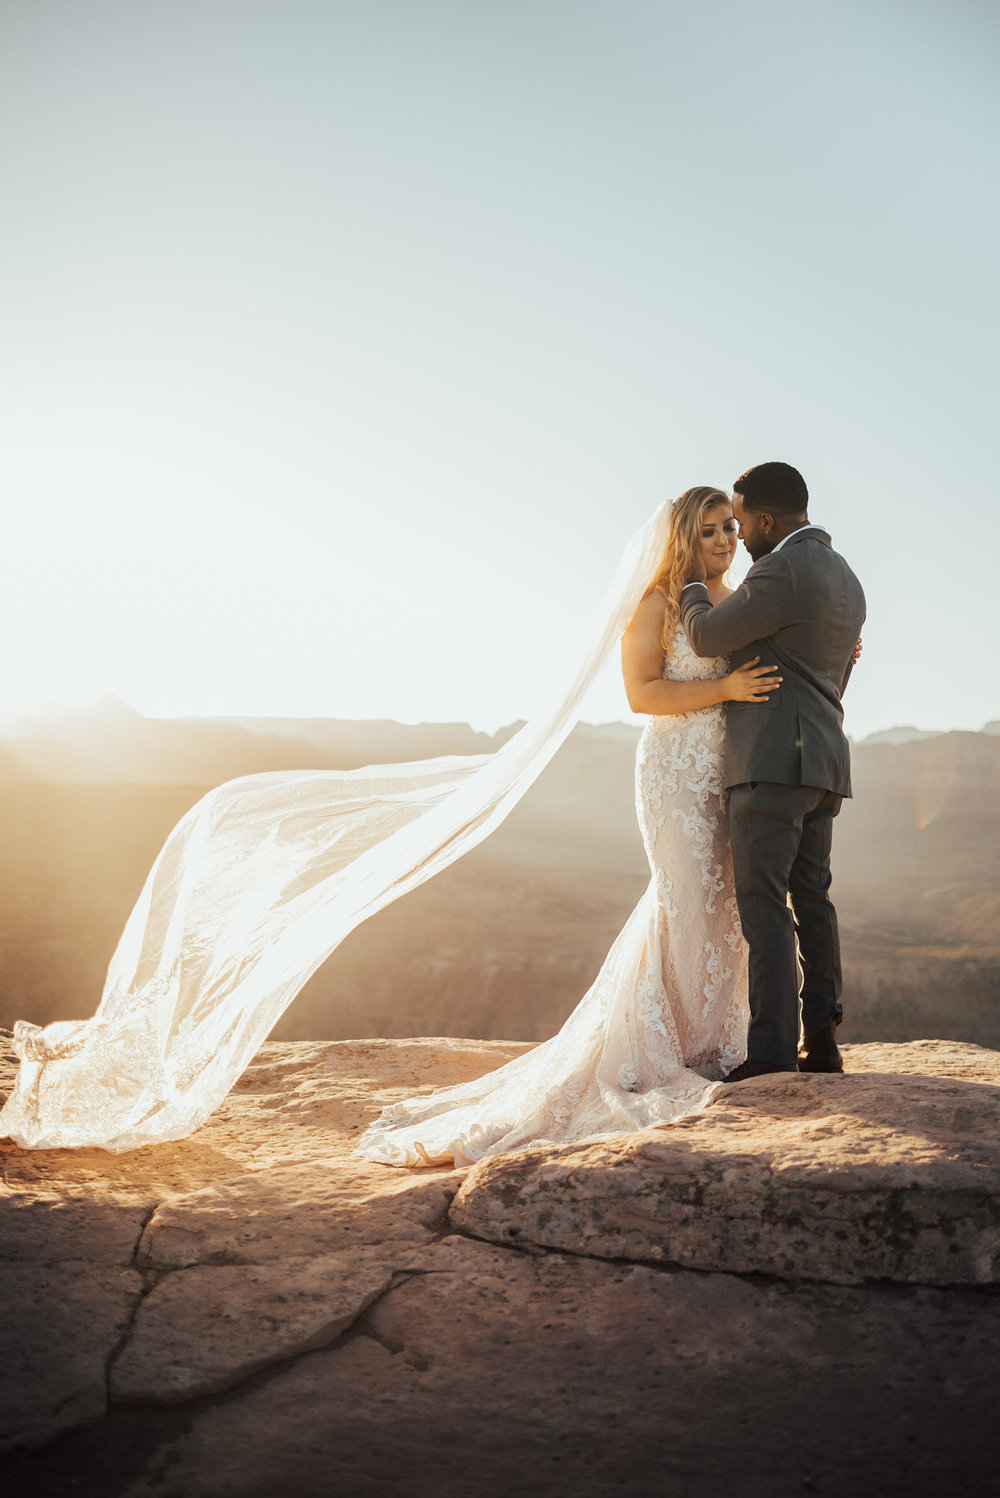 savannah-bridal-shop-ivory-and-beau-maggie-sottero-bride-tuscany-lynette-zion-national-park-wedding-utah-wedding-savannah-wedding-dresses-savannah-wedding-gowns-ashley-smith-photography-vanilla-and-the-bean-12.JPG